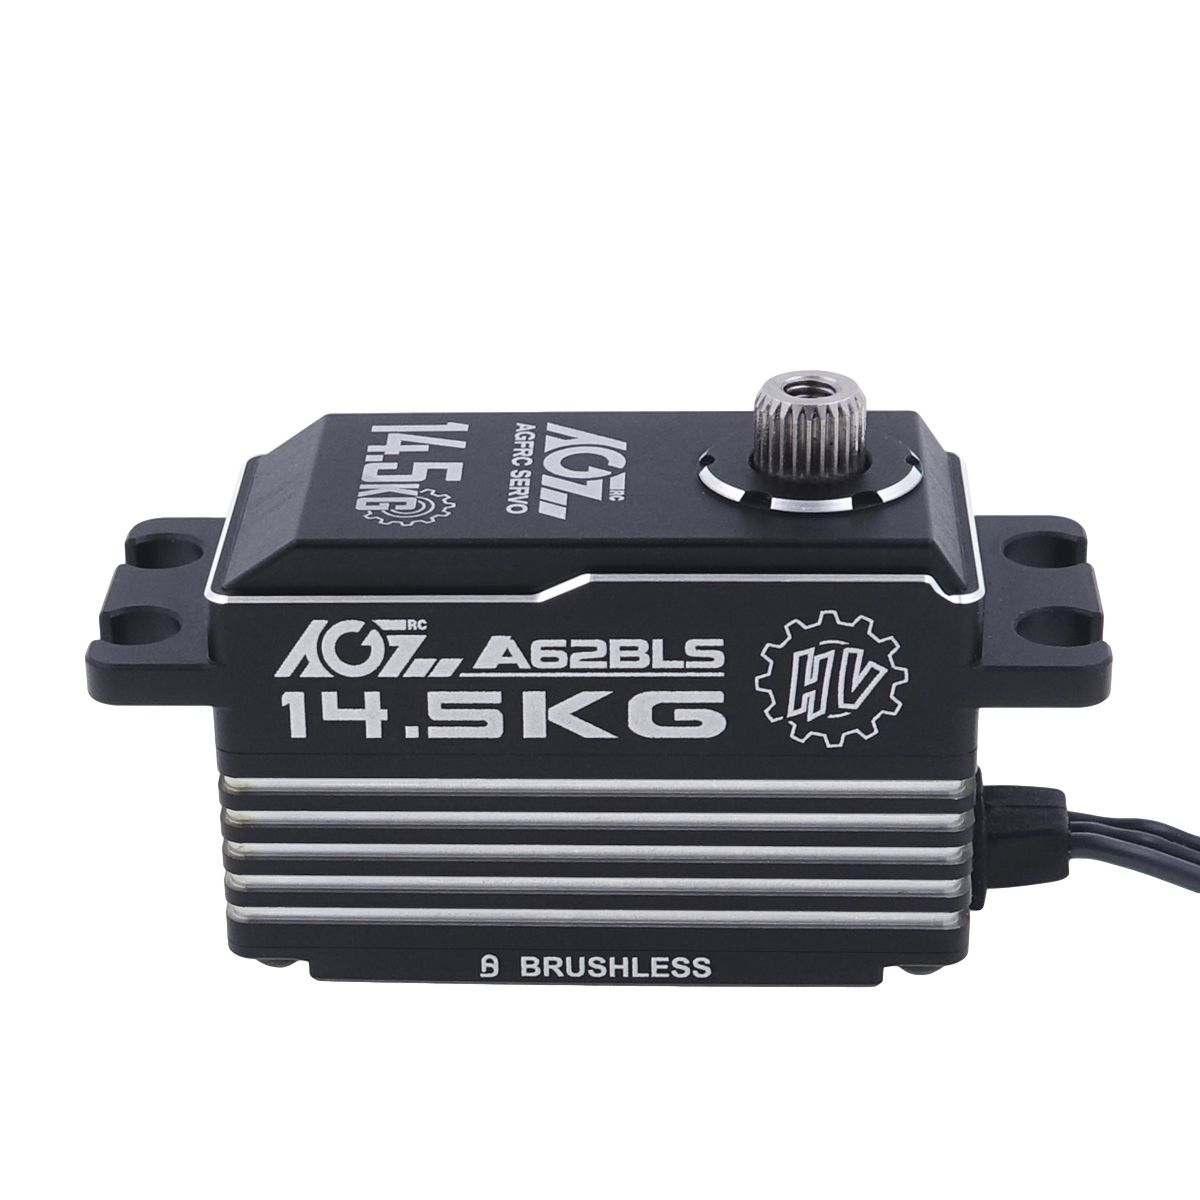 AGFRC A62BLS 14.5KG Low Profile Brushless Servo For 1/10 RC Drifting